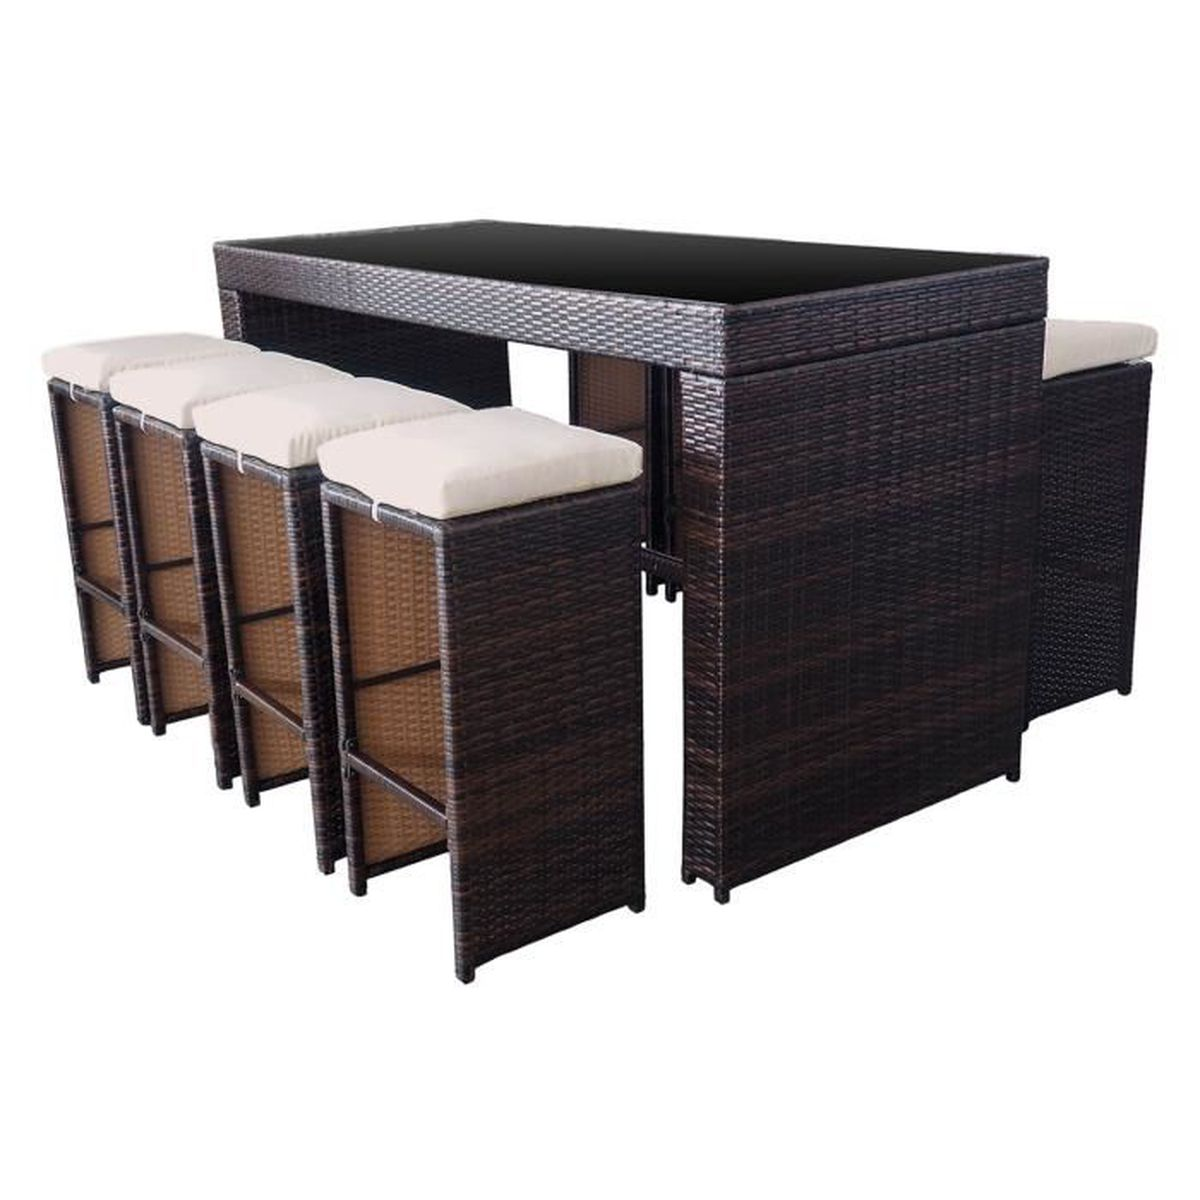 table a manger jardin 8 places achat vente table a manger jardin 8 places pas cher cdiscount. Black Bedroom Furniture Sets. Home Design Ideas